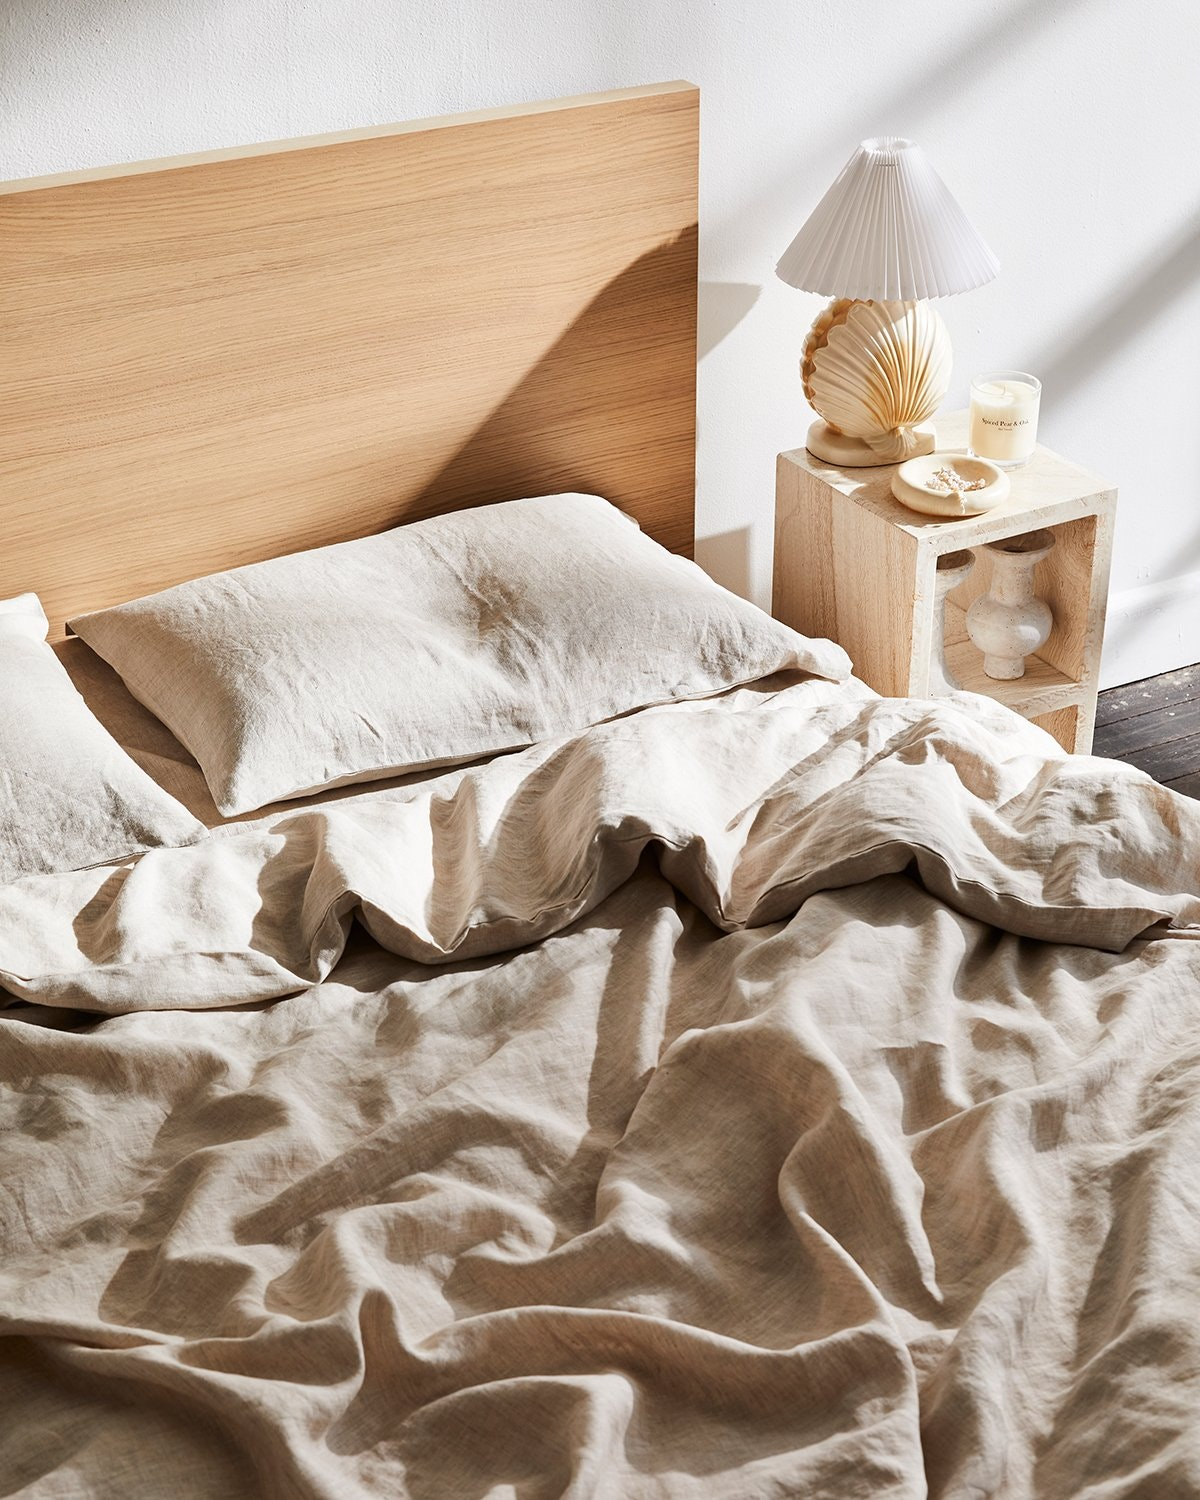 Linen sheets lay sprawled on a messy bed.